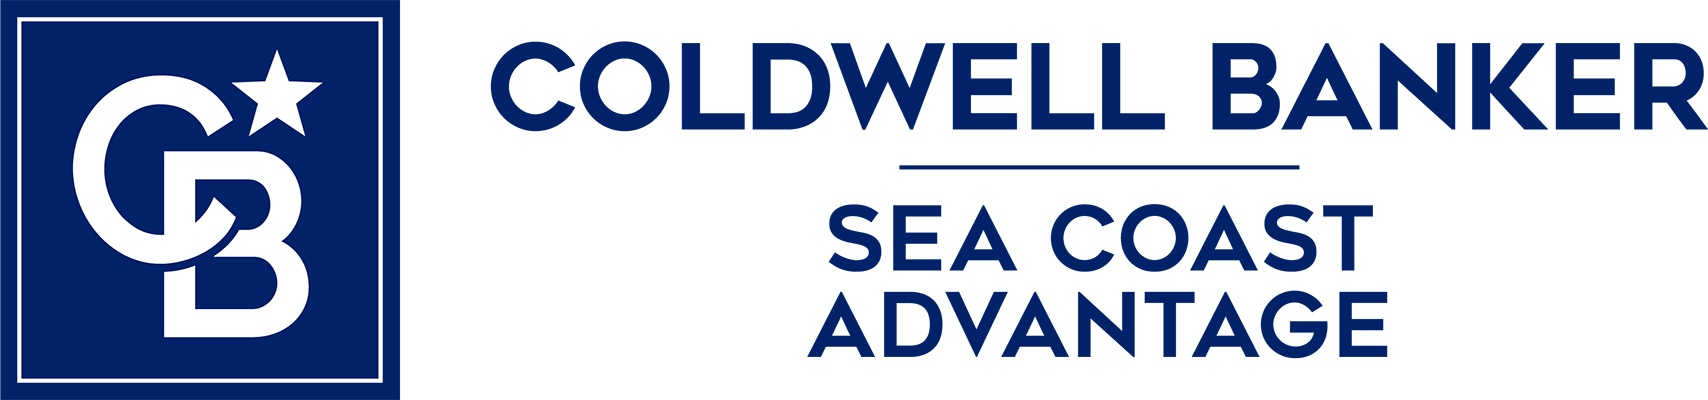 Kayla Tatum - Coldwell Banker Sea Coast Advantage Realty Logo